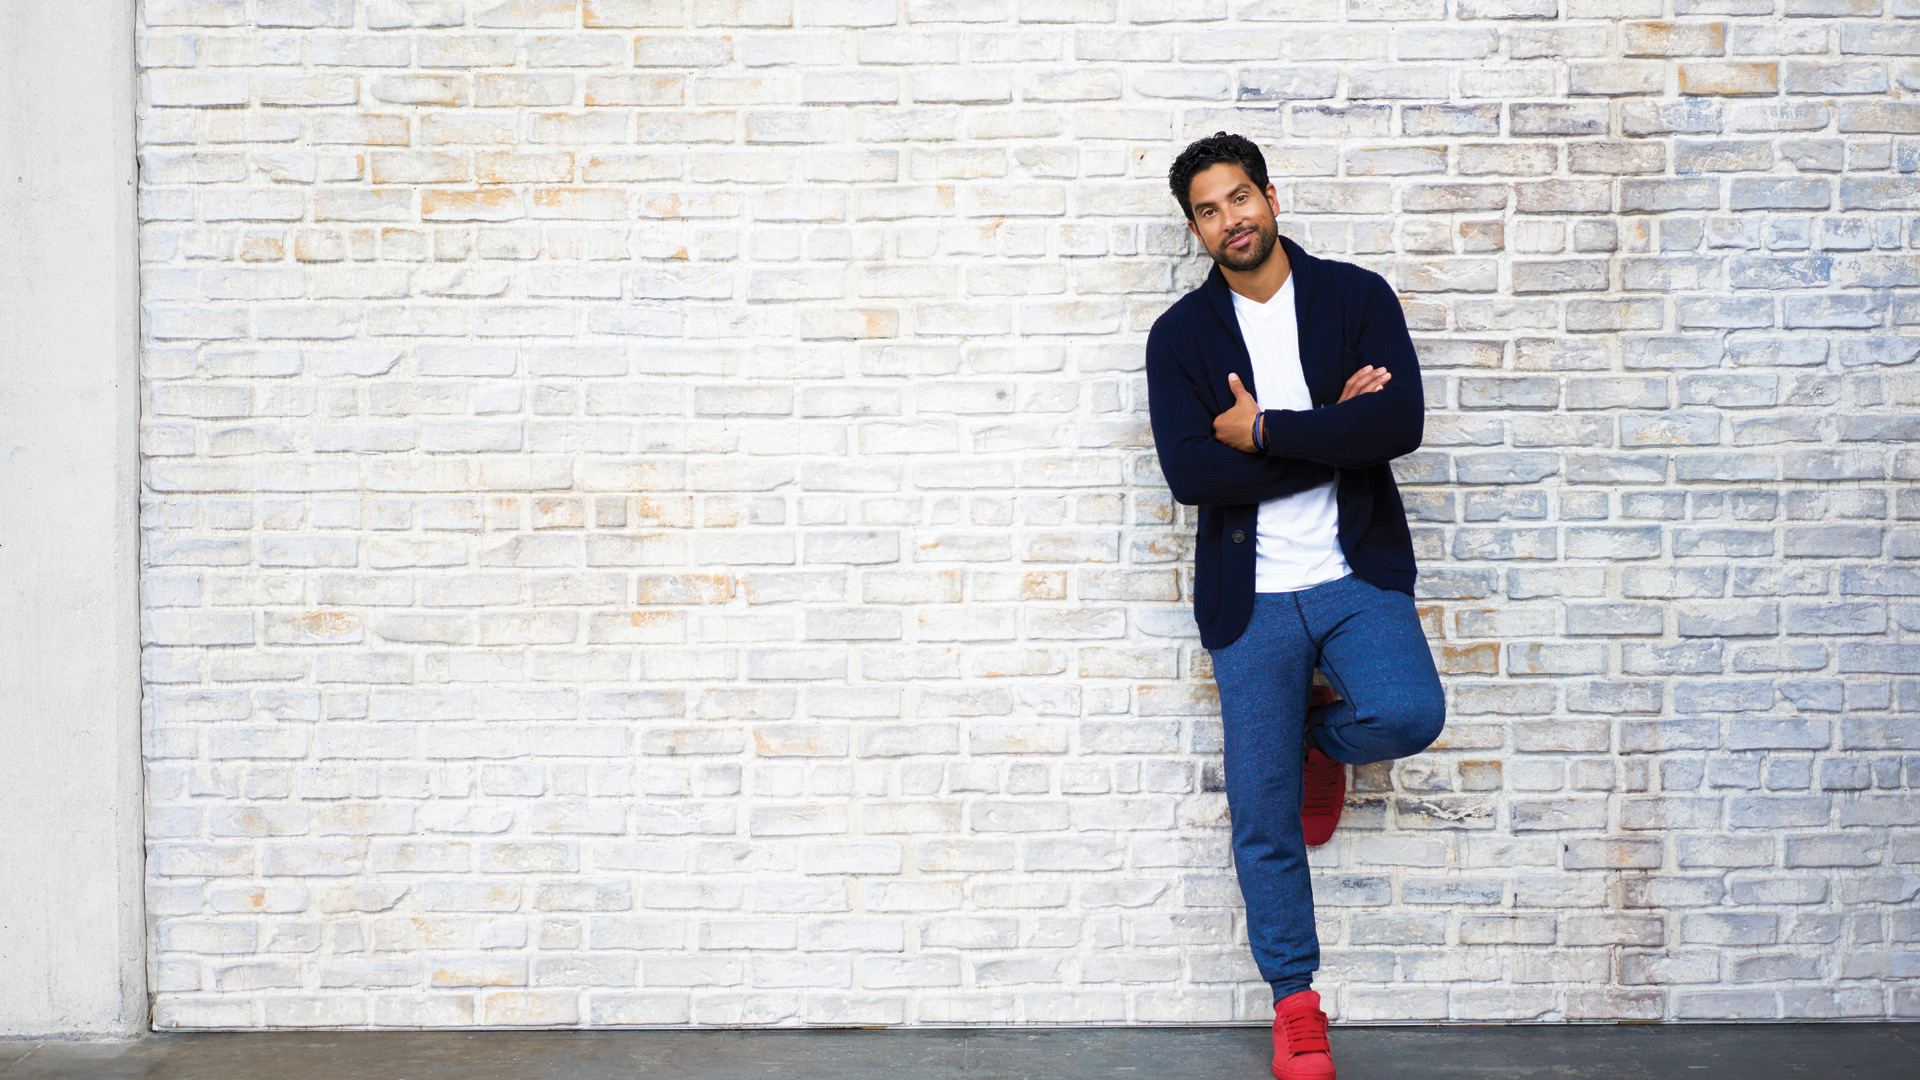 Adam Rodriguez, especially when he makes casual look haute